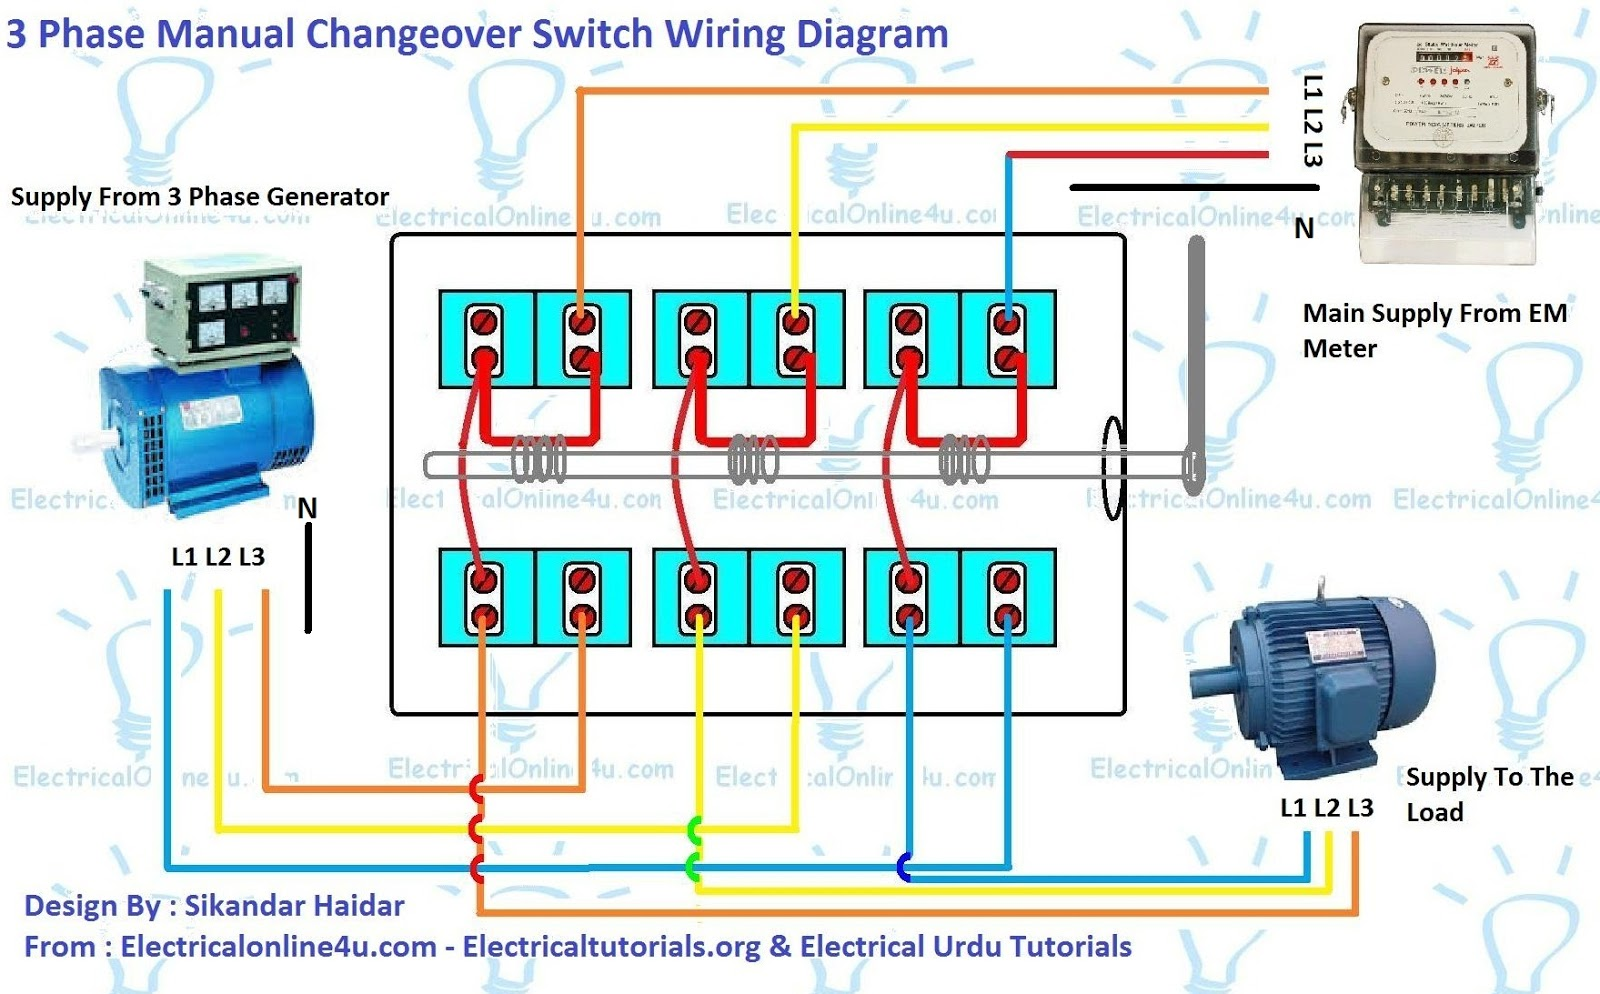 3 wire electrical wiring diagram white rodgers 90 290q relay phase manual changeover switch for